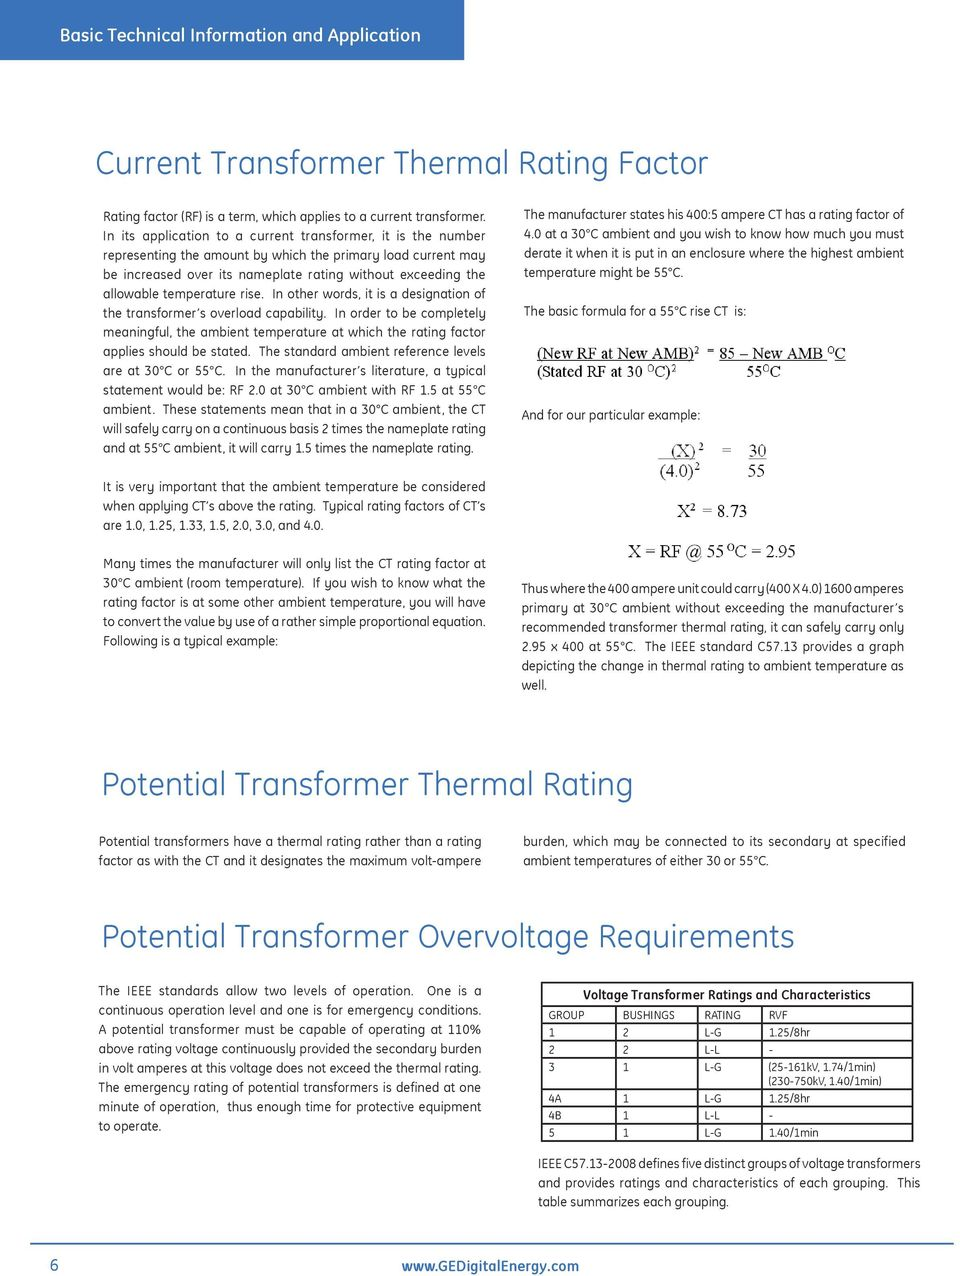 temperature rise. In other words, it is a designation of the transformer s overload capability.